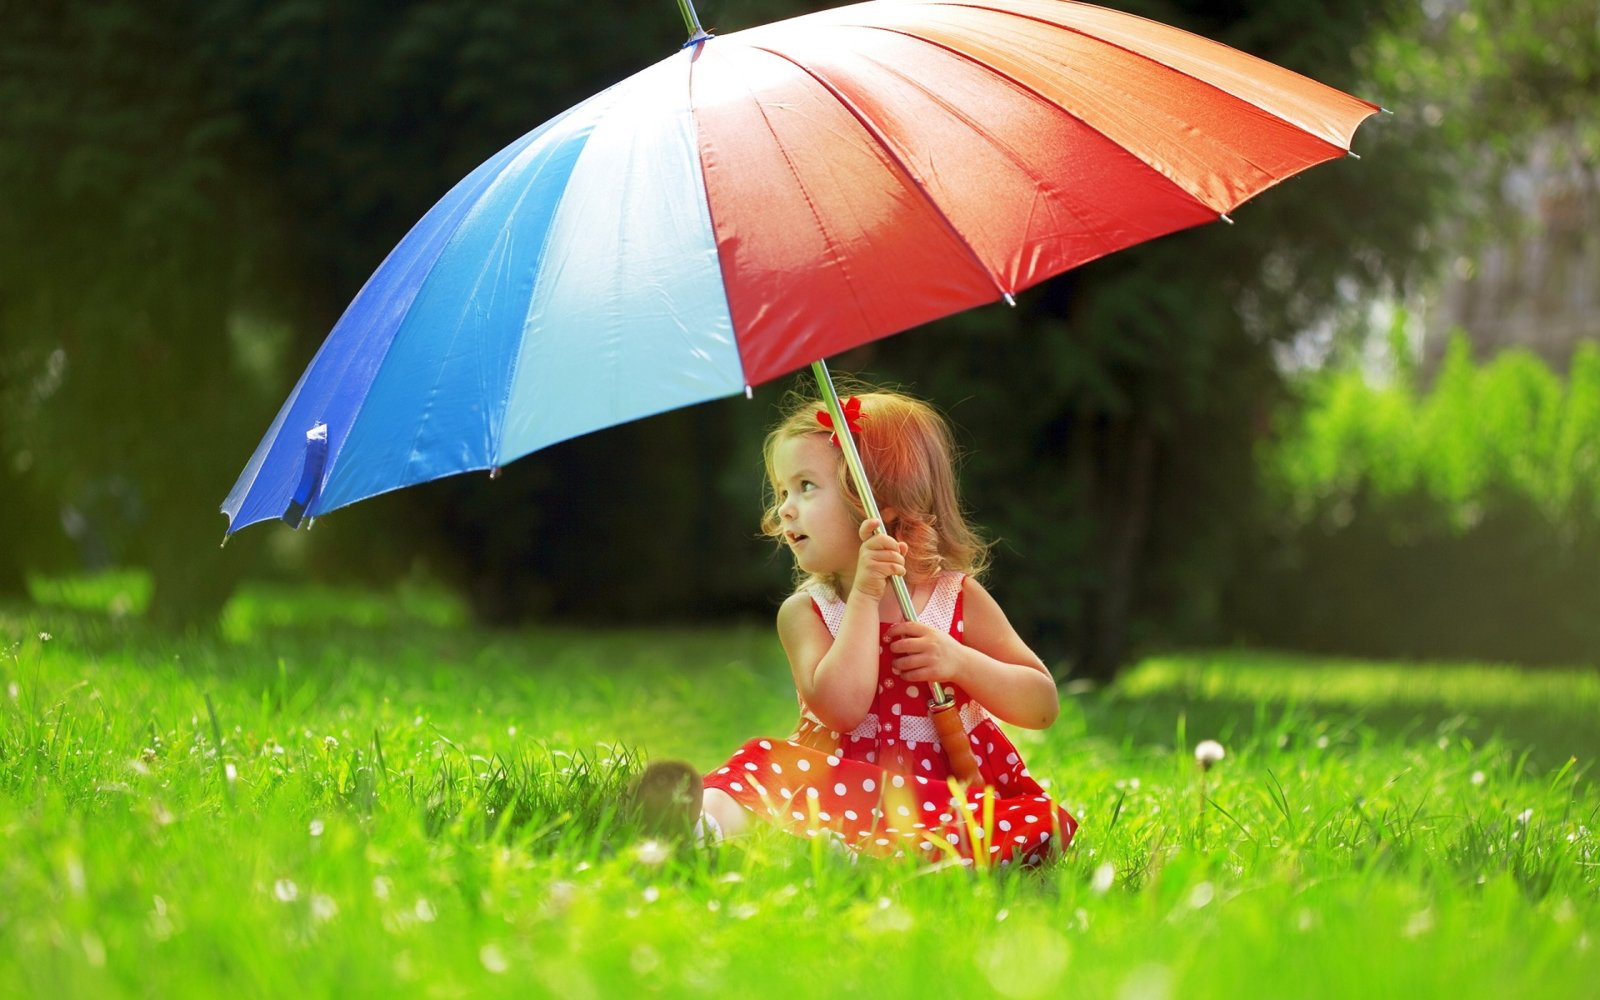 Beautiful-cute-baby-girl-with-umbrella.jpg